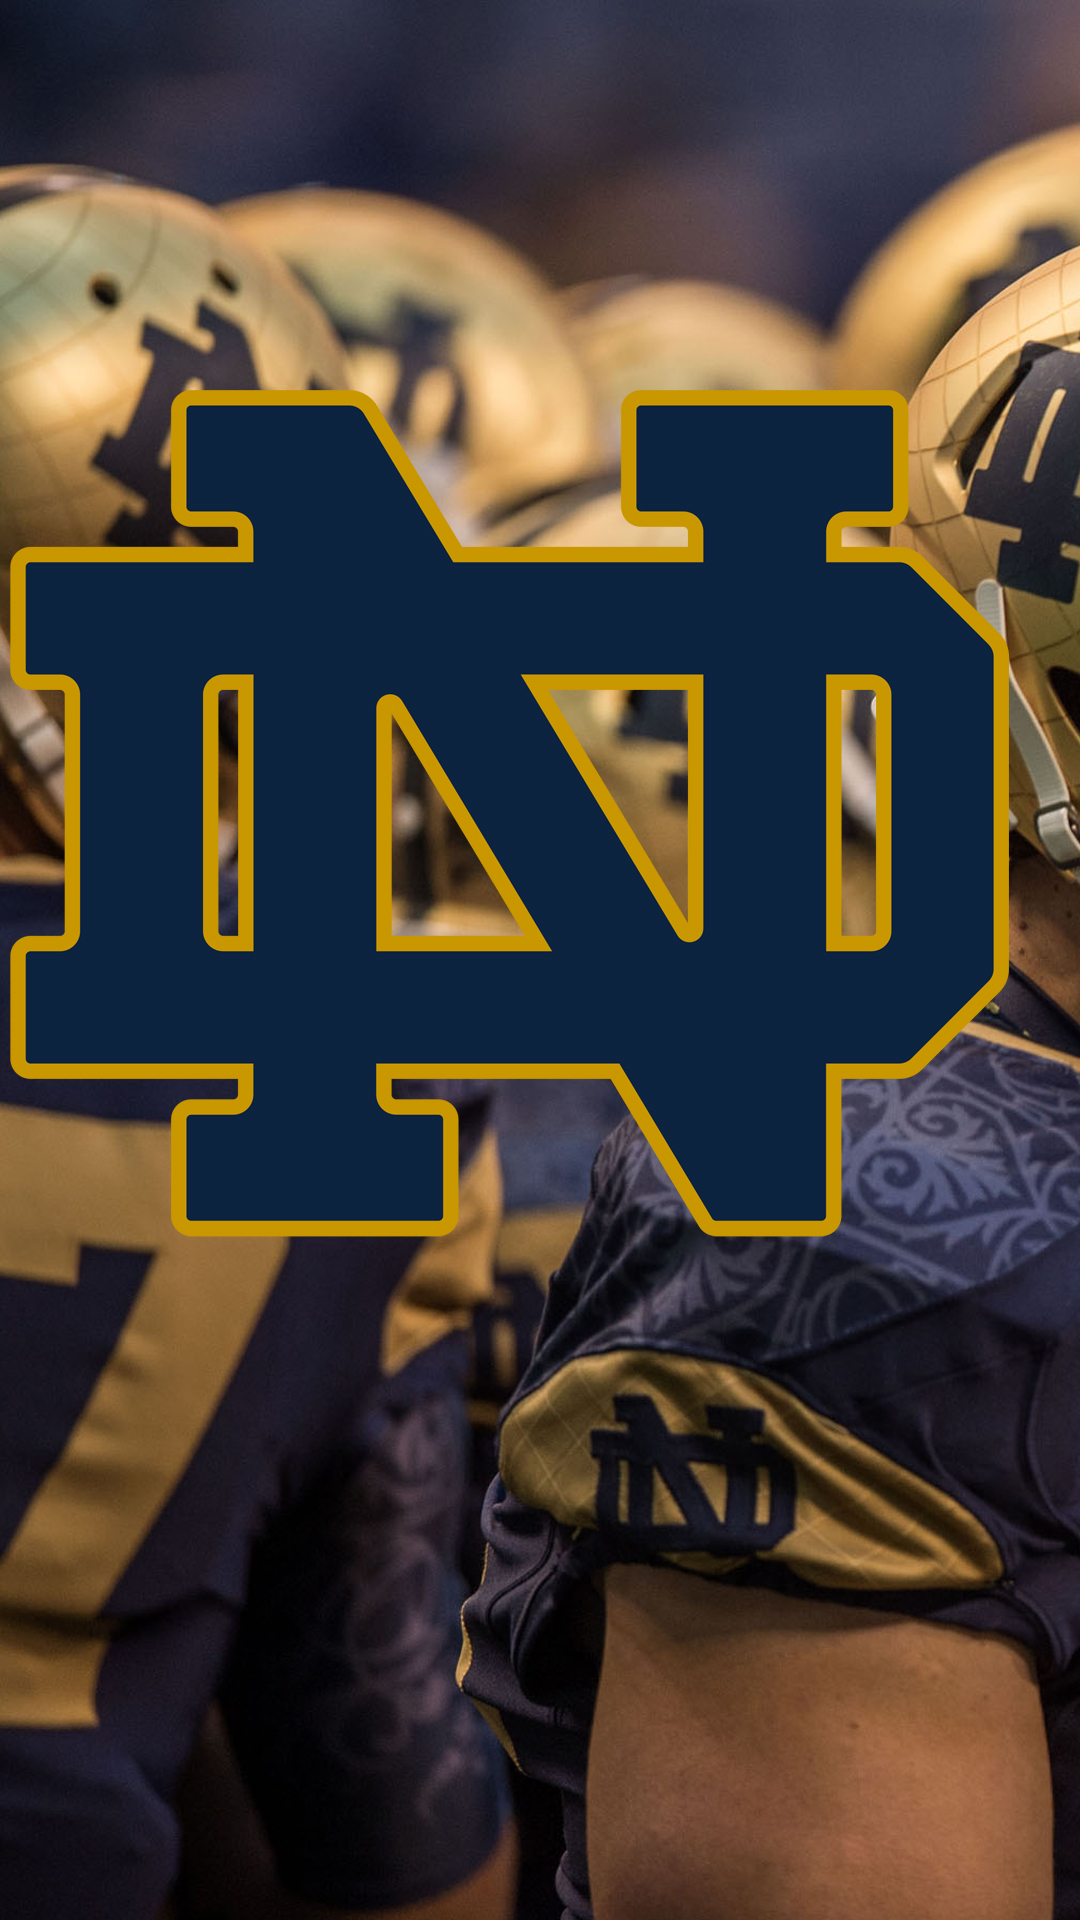 Notre dame fighting irish wallpaper for android with logo - Notre dame football wallpaper ...